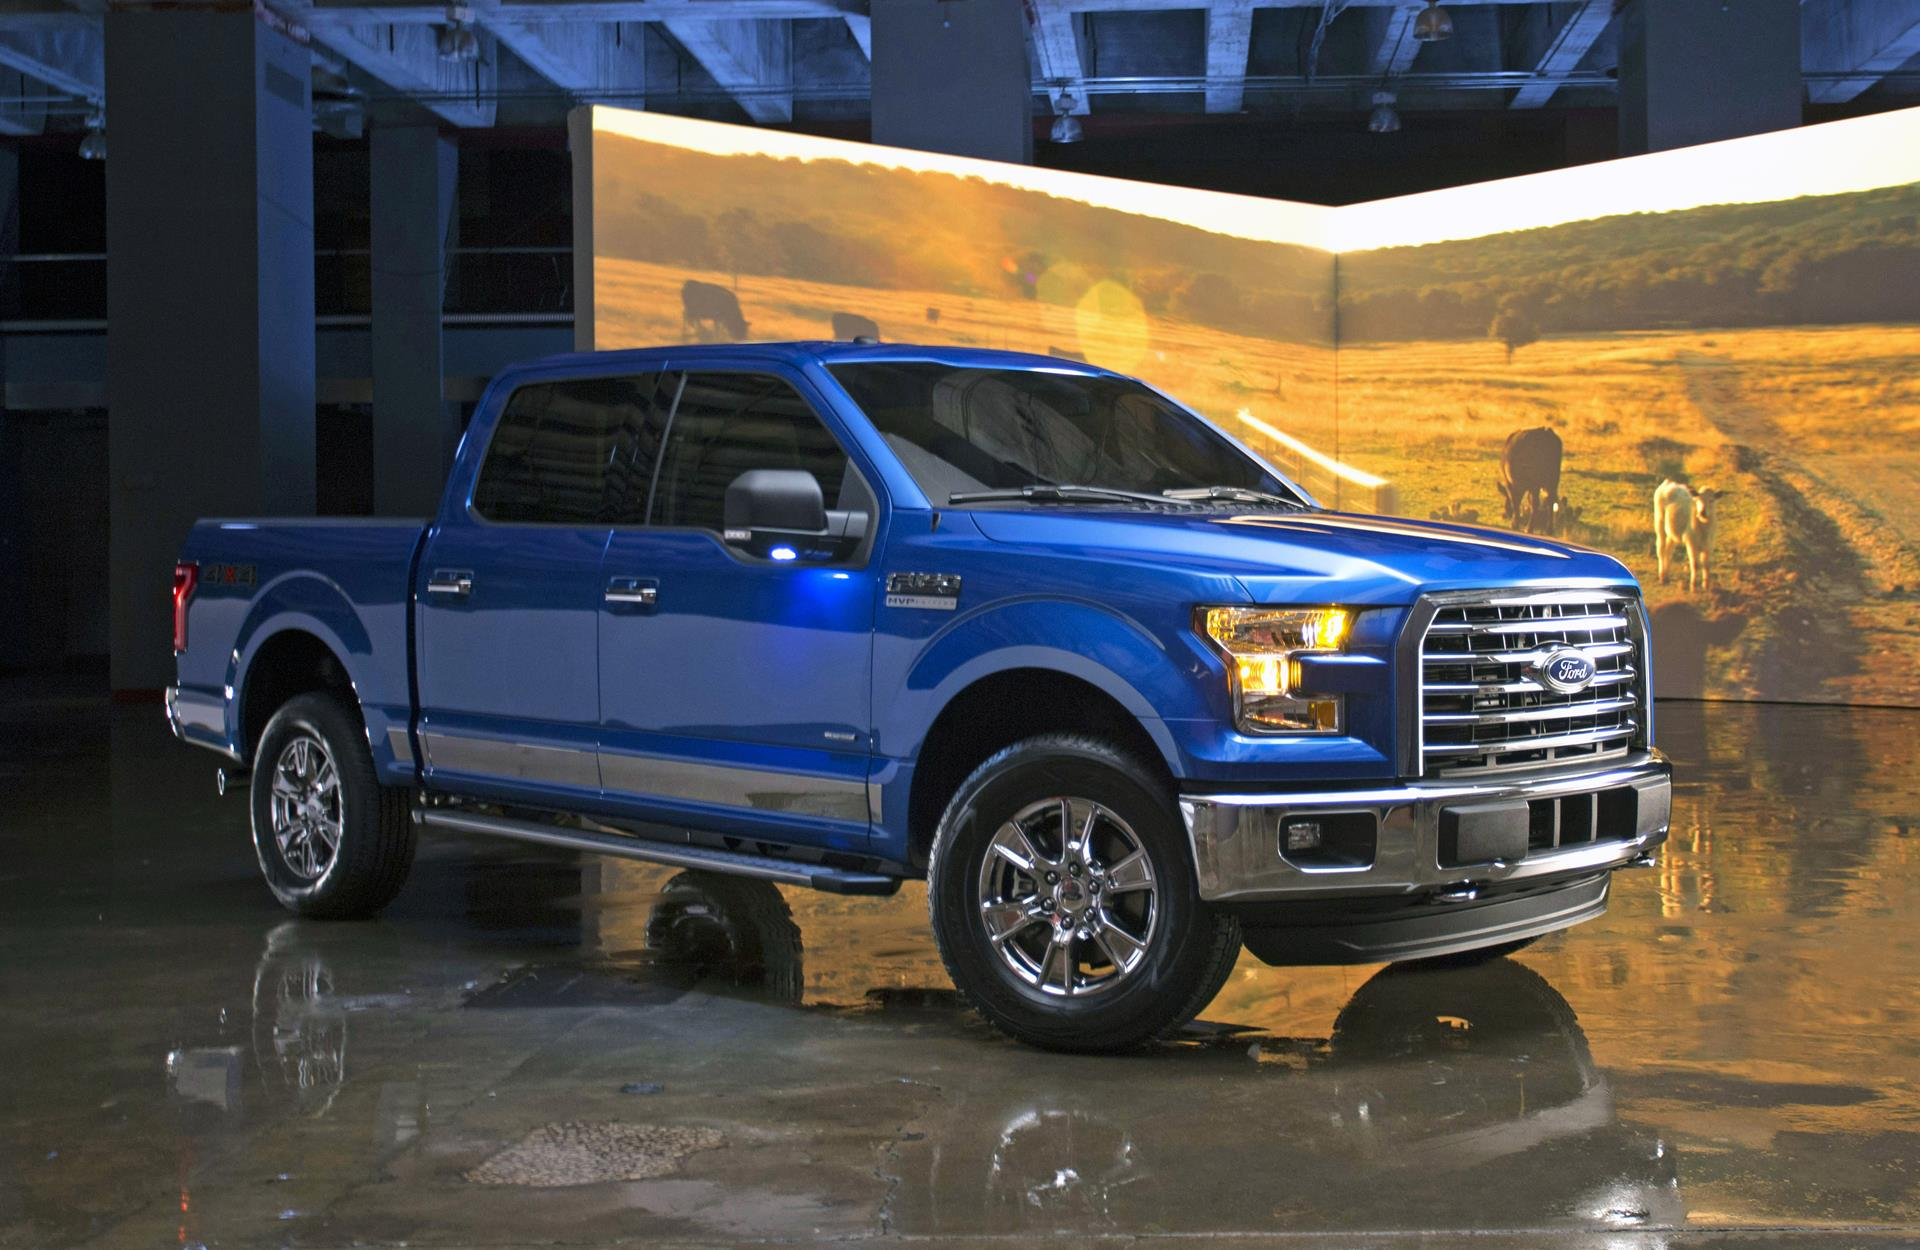 2016 ford f 150 mvp edition technical specifications and data engine dimensions and mechanical. Black Bedroom Furniture Sets. Home Design Ideas